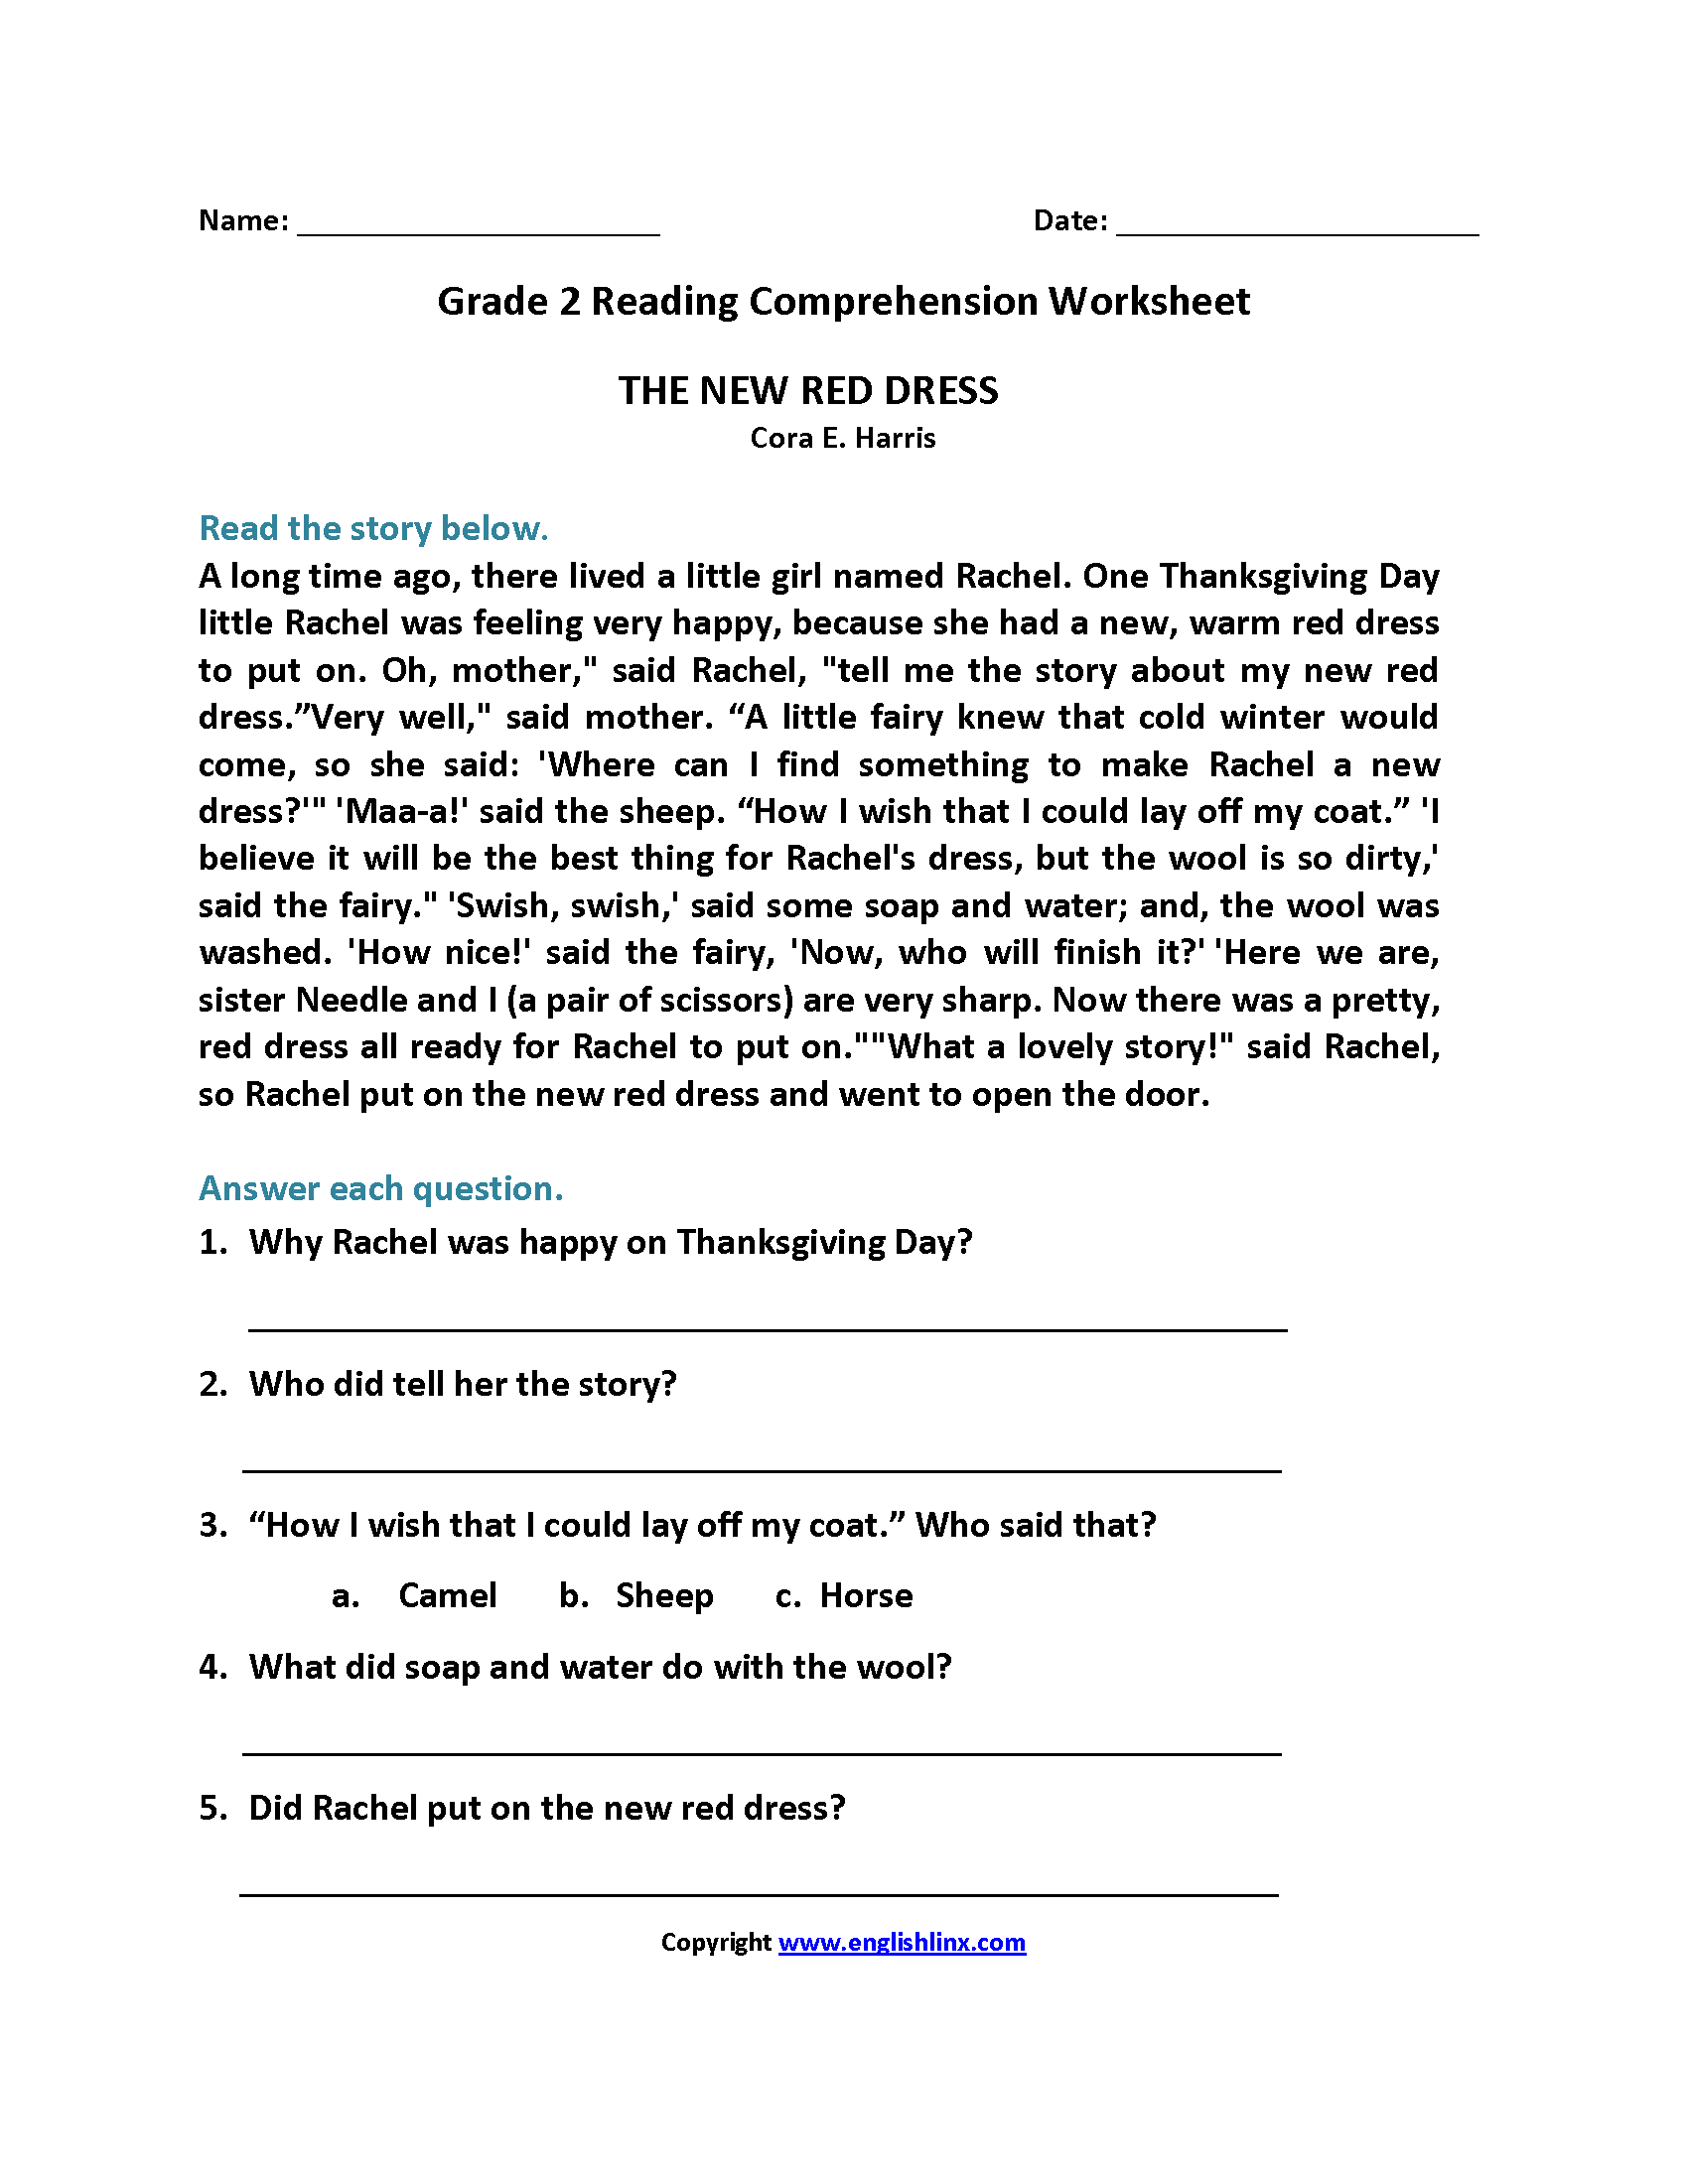 The New Red Dress Second Grade Reading Worksheets